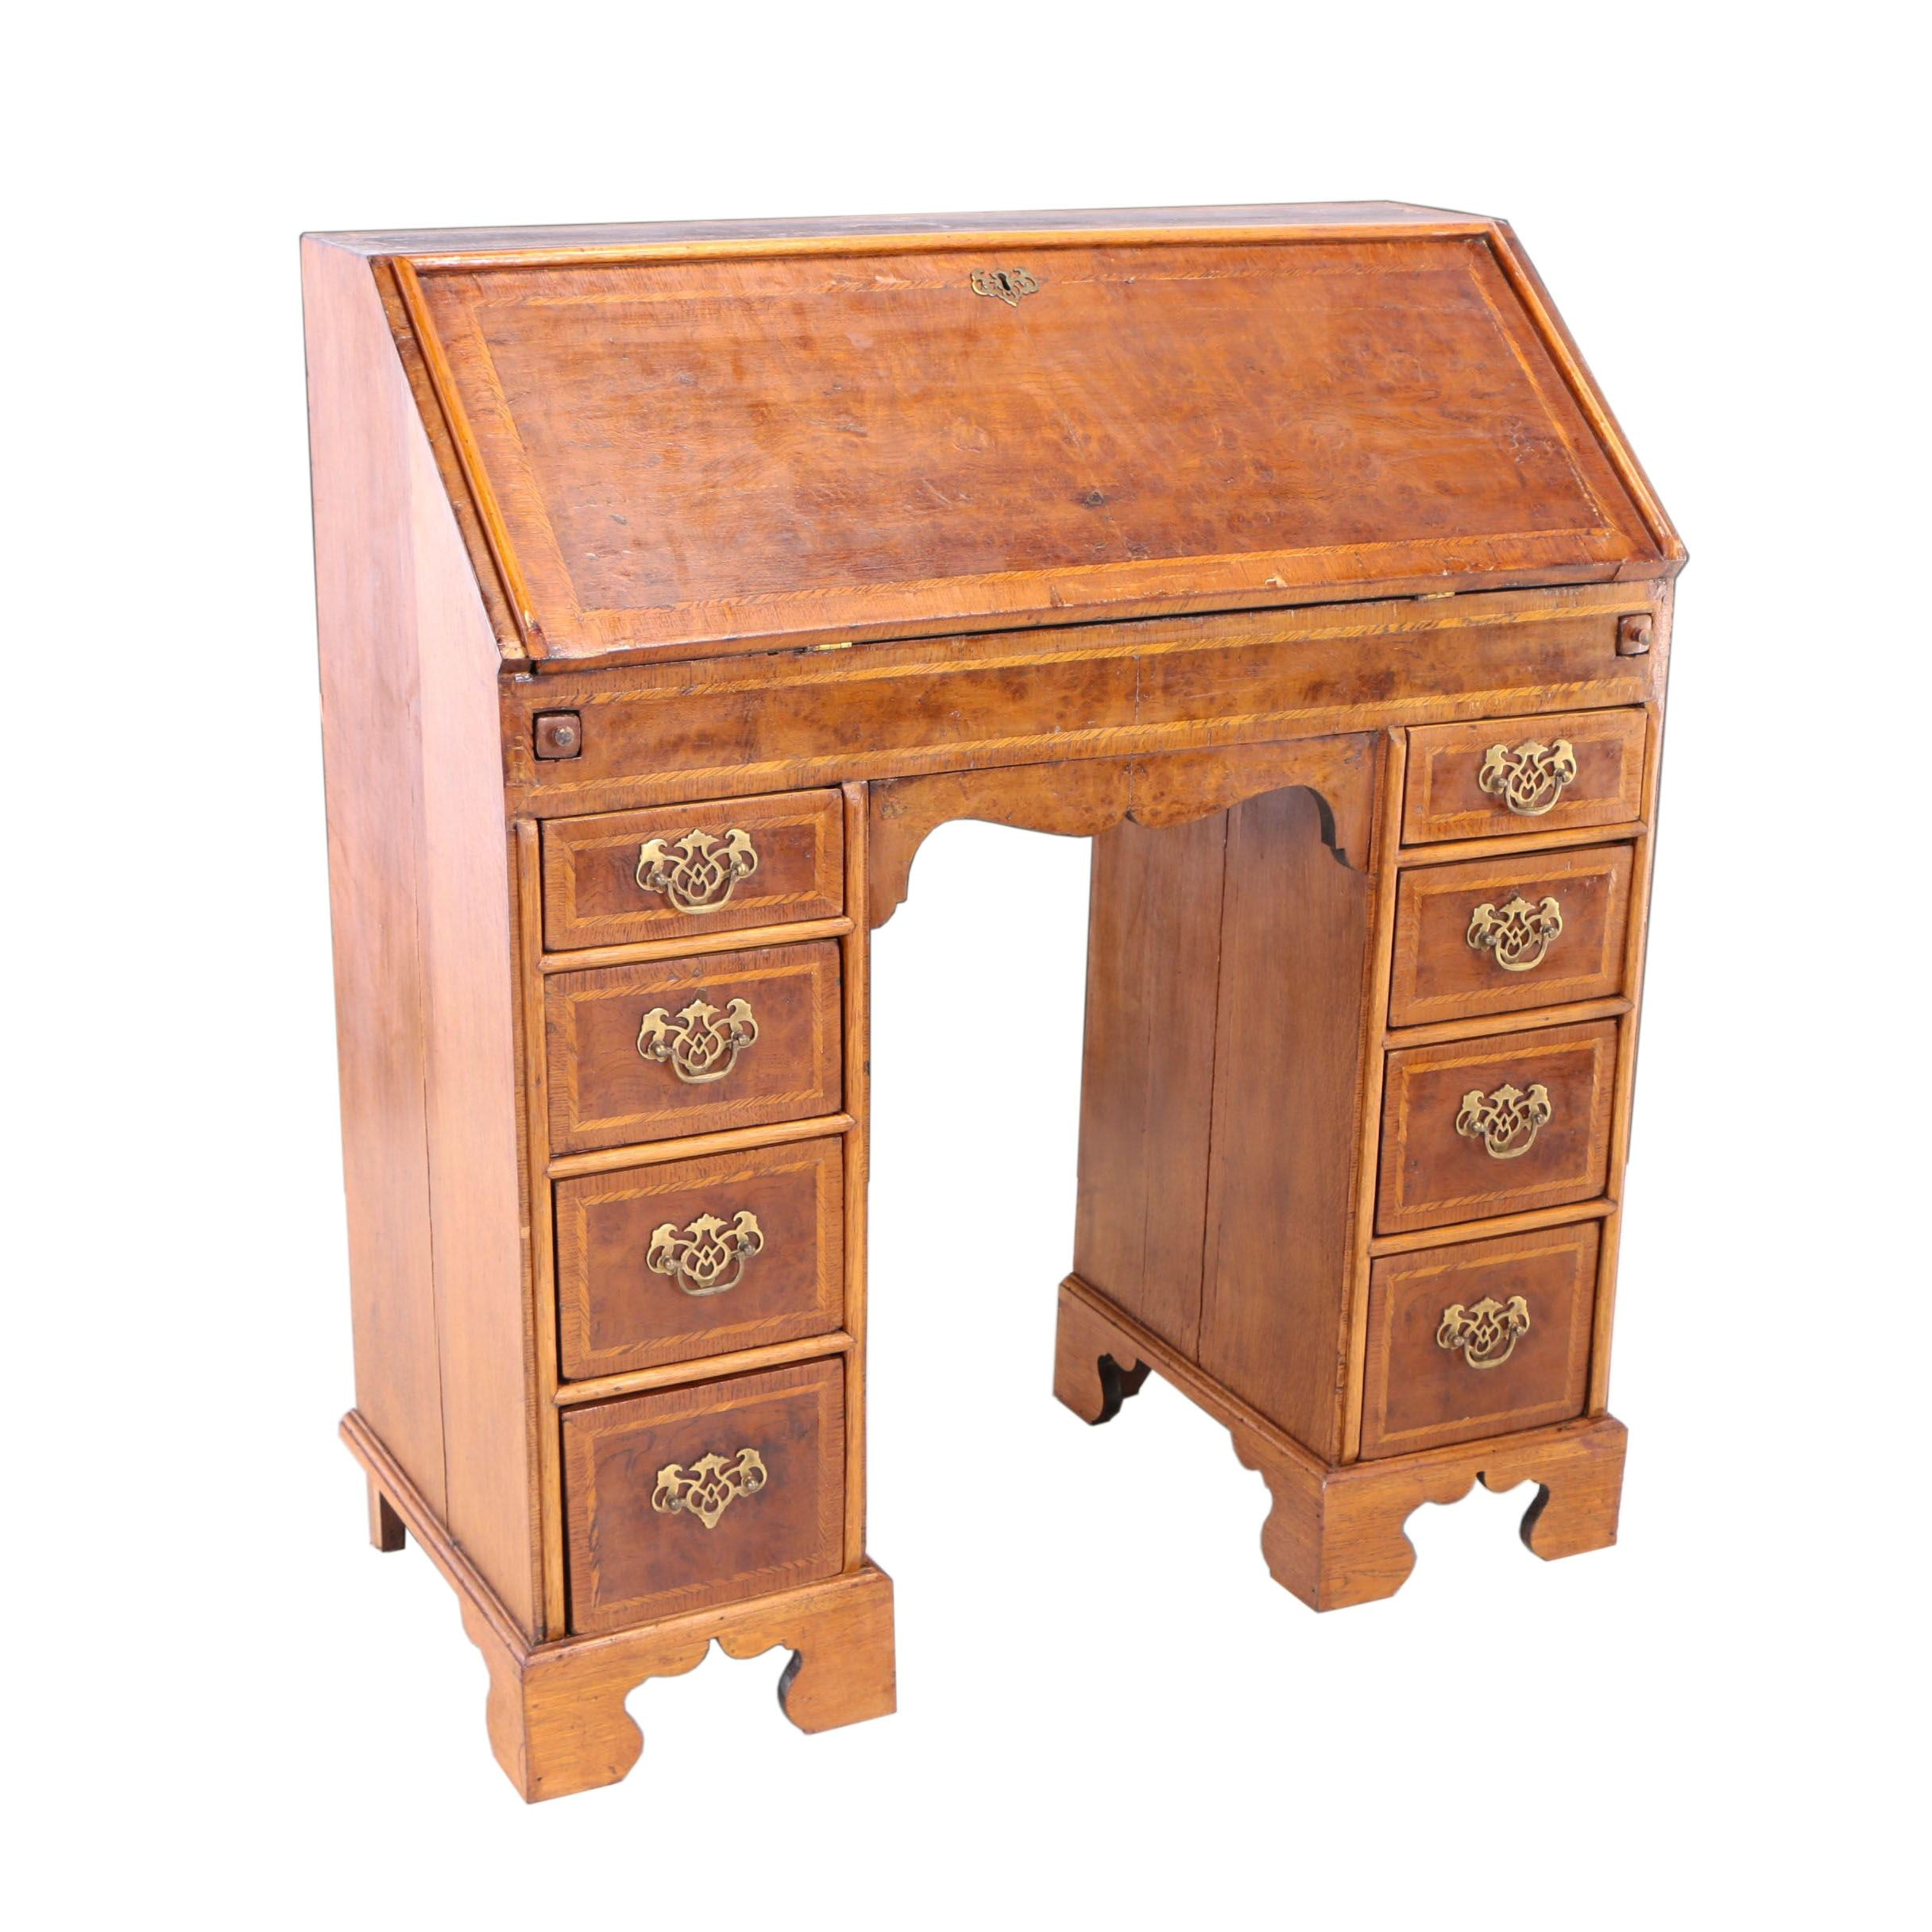 English Oak and Burr Elm Kneehole Bureau, 18th Century